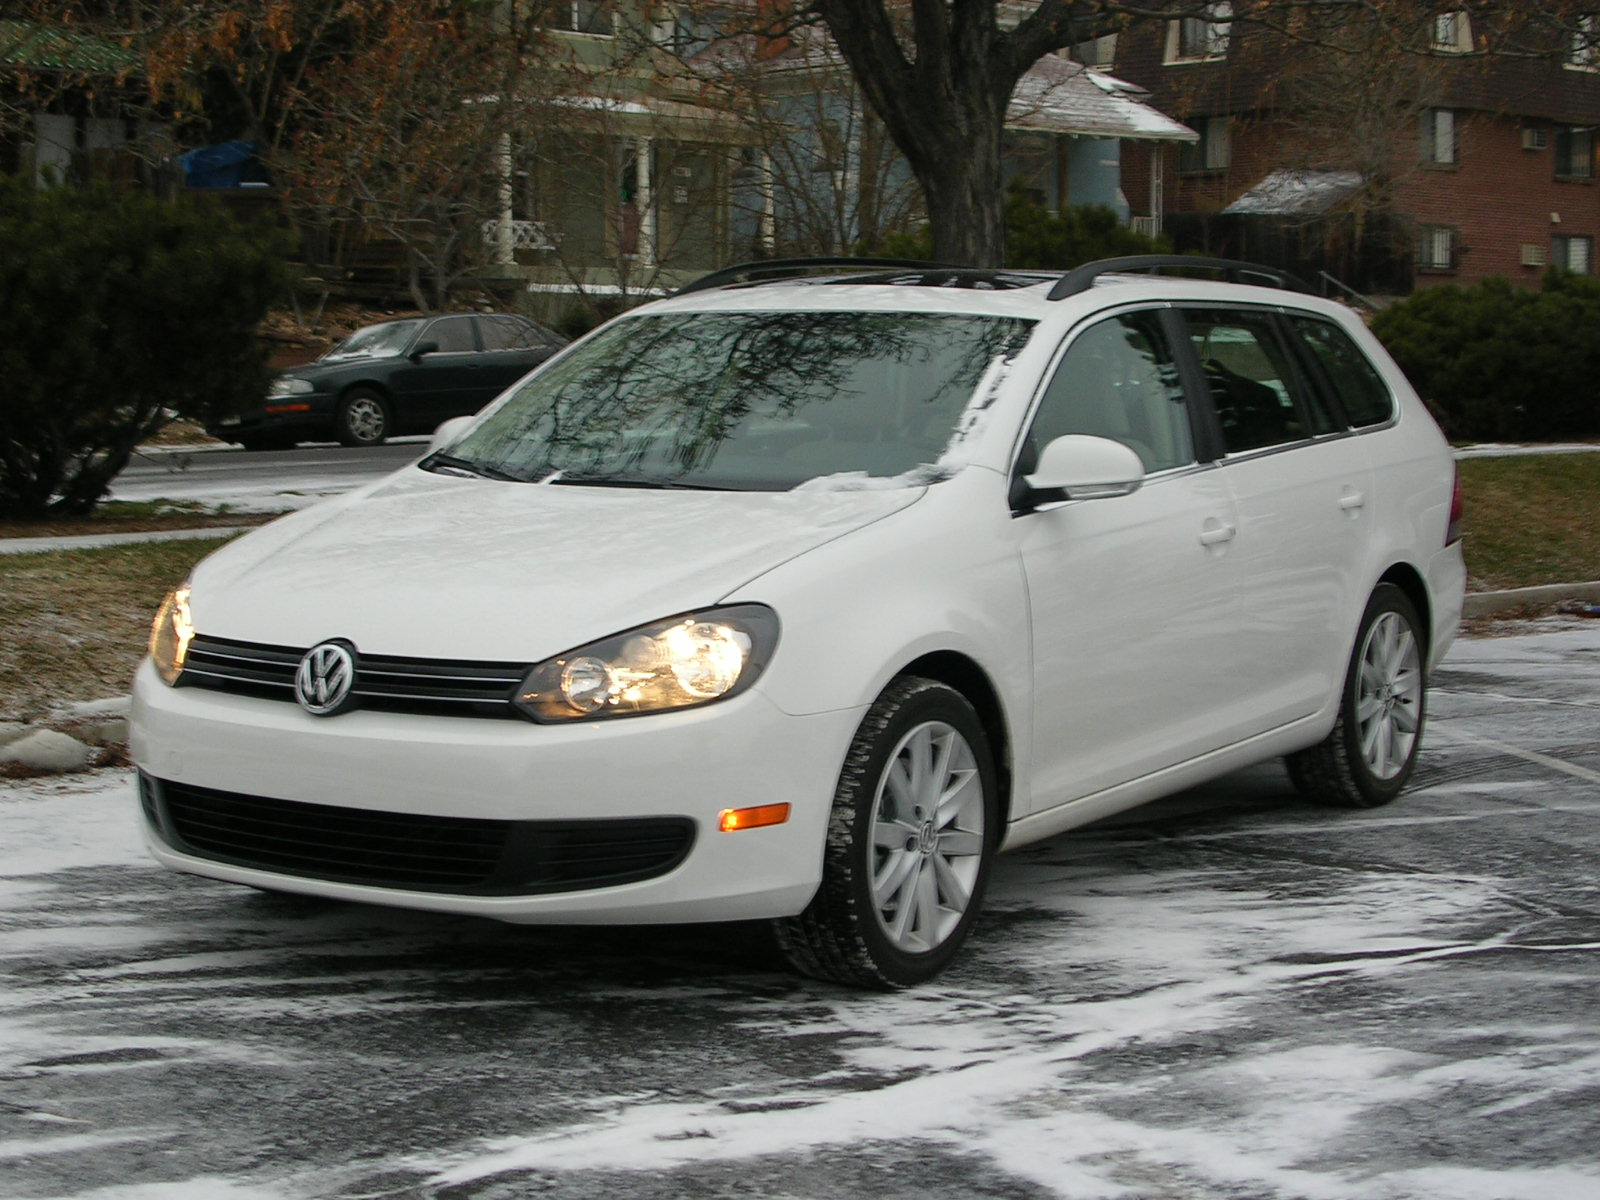 2010 jetta sportwagon tdi vw has put sport into wagon denver auto solutions. Black Bedroom Furniture Sets. Home Design Ideas